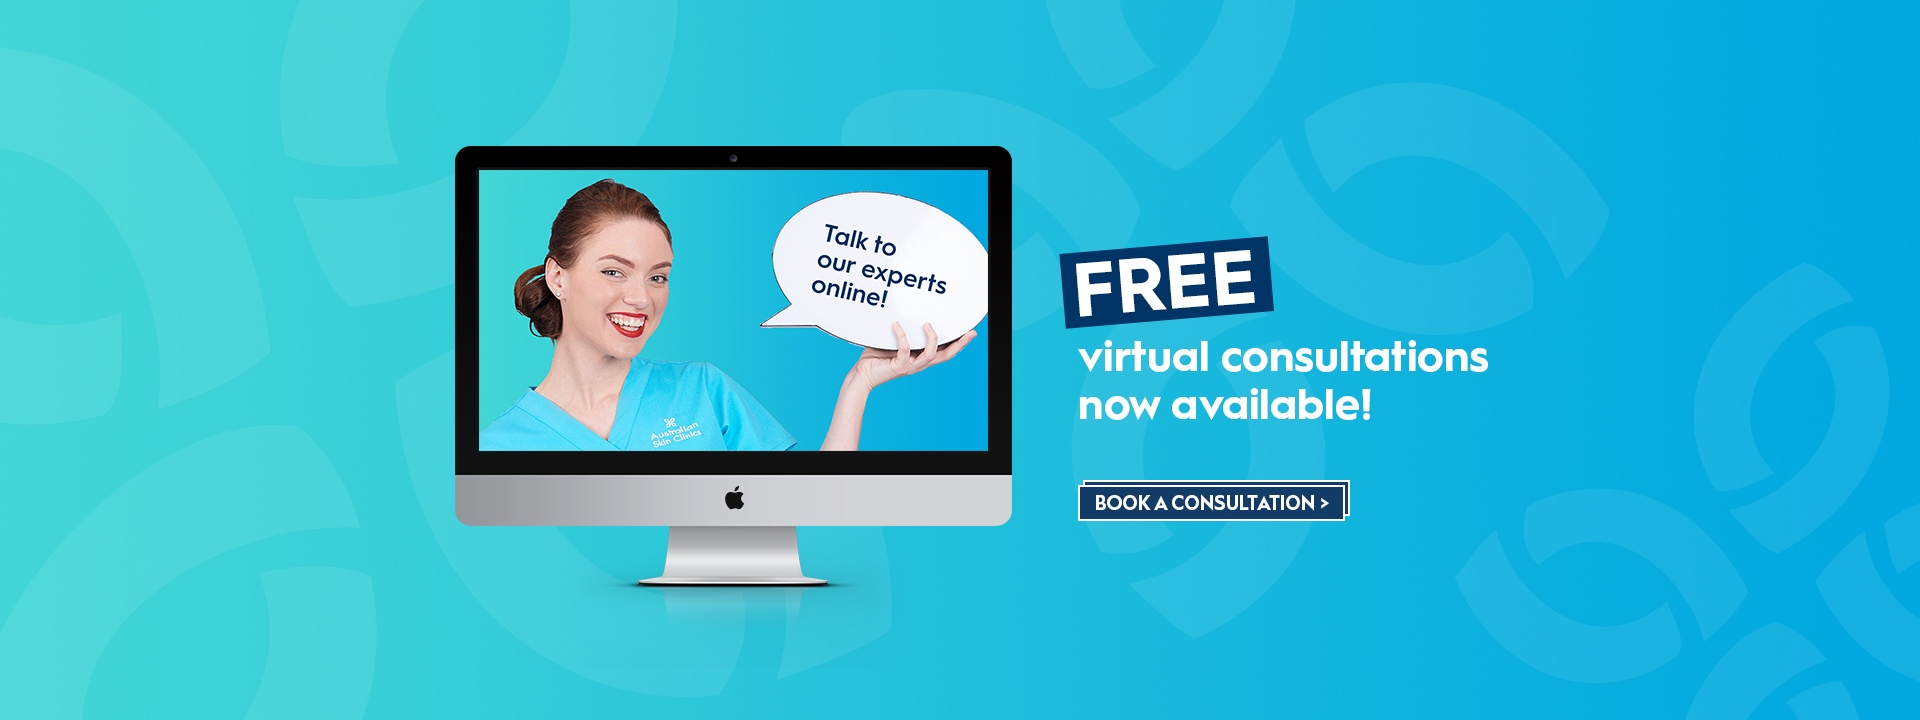 Virtual Consultations Now Available!